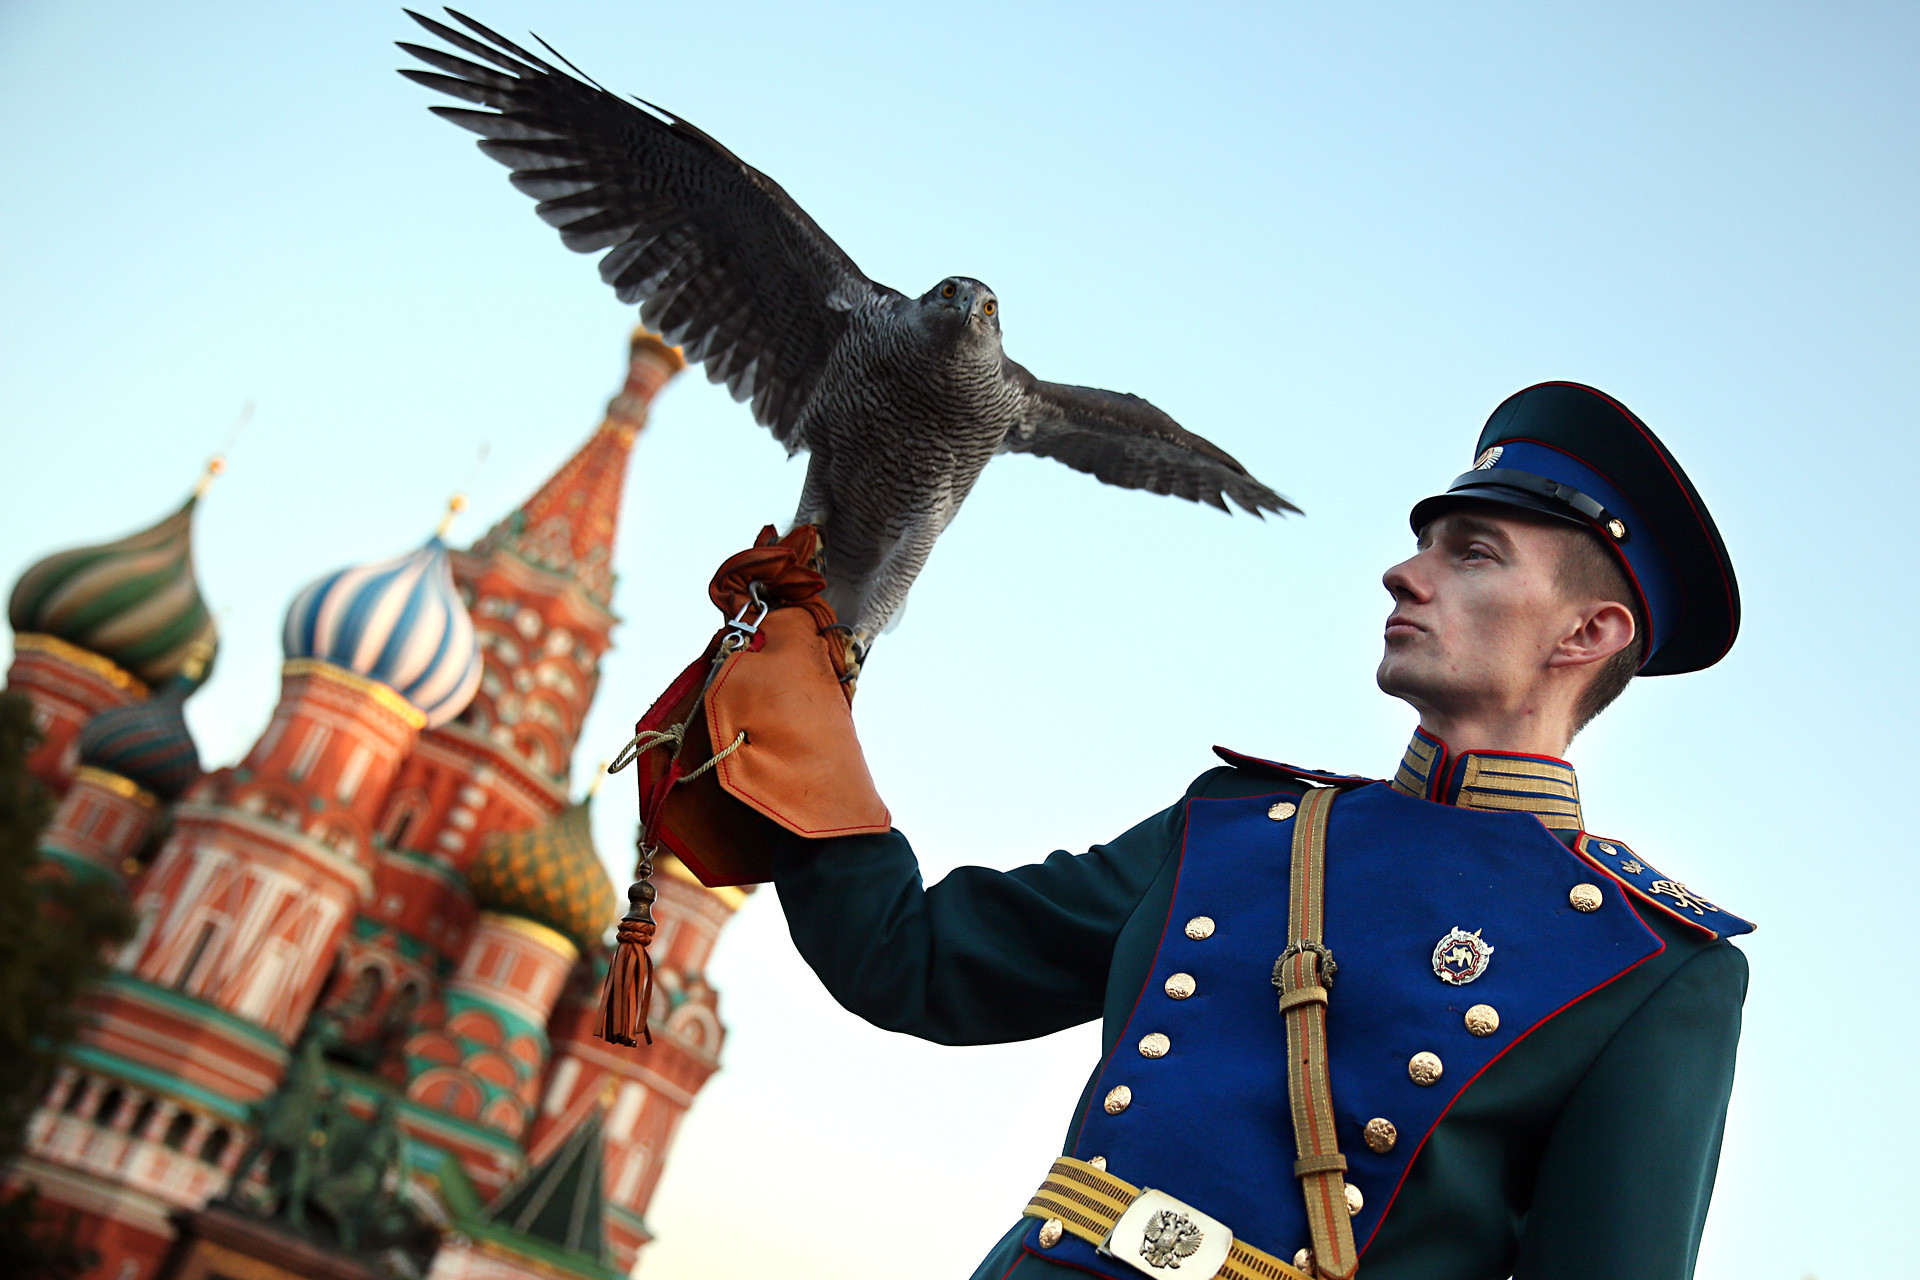 A member of the Kremlin ornithological service at the closing ceremony of the Spasskaya Tower International Military Music Festival on Red Square